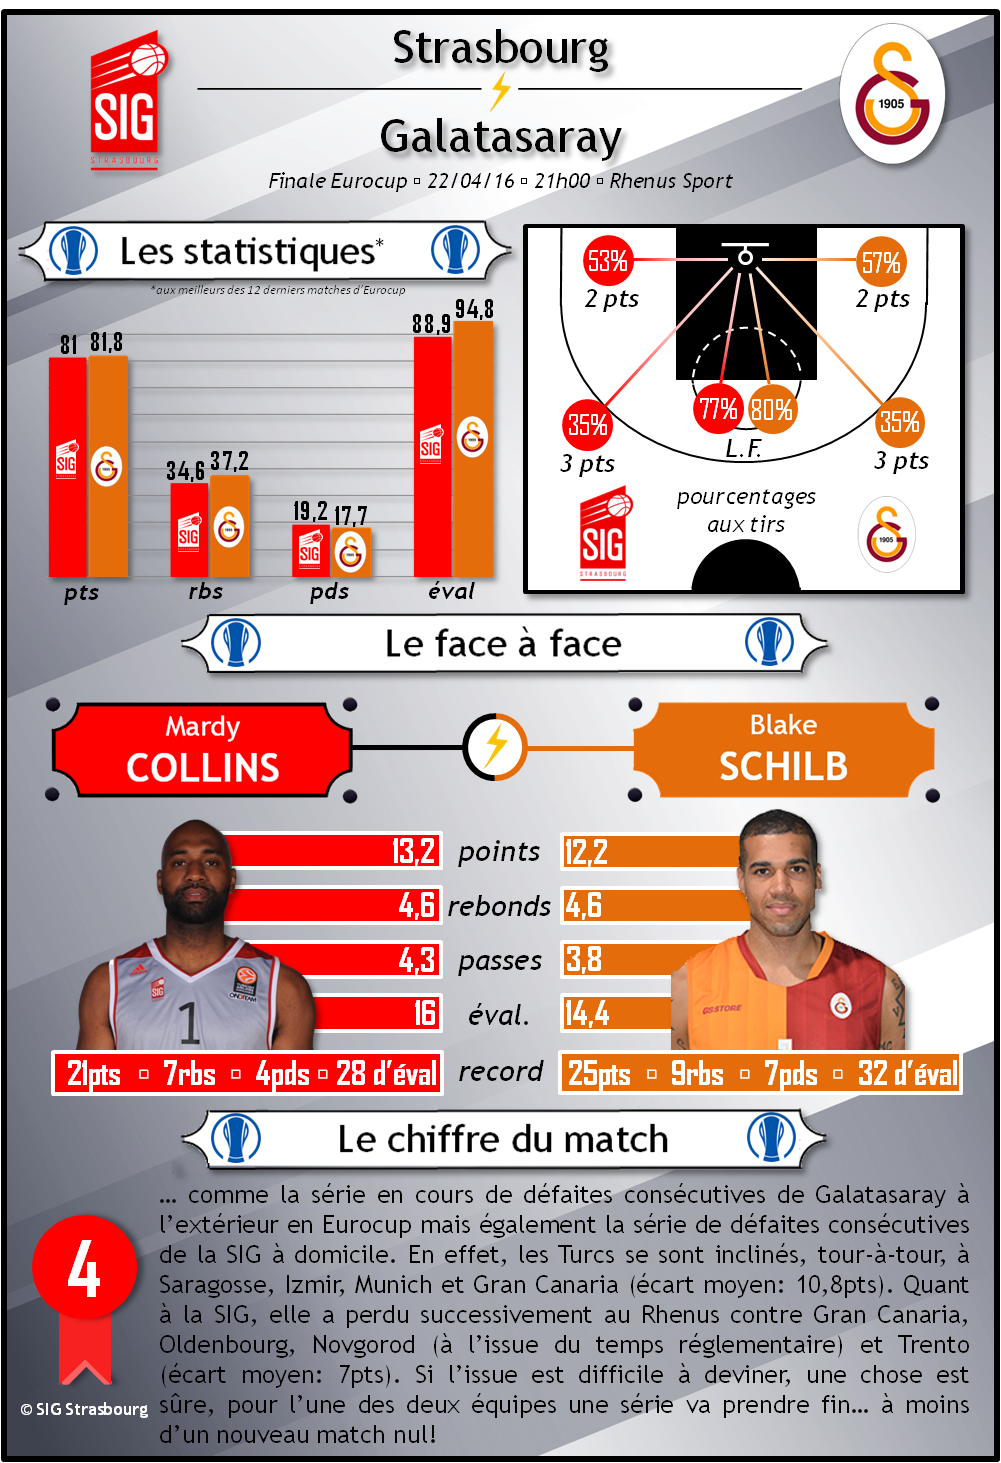 infographie SIG-galatasaray